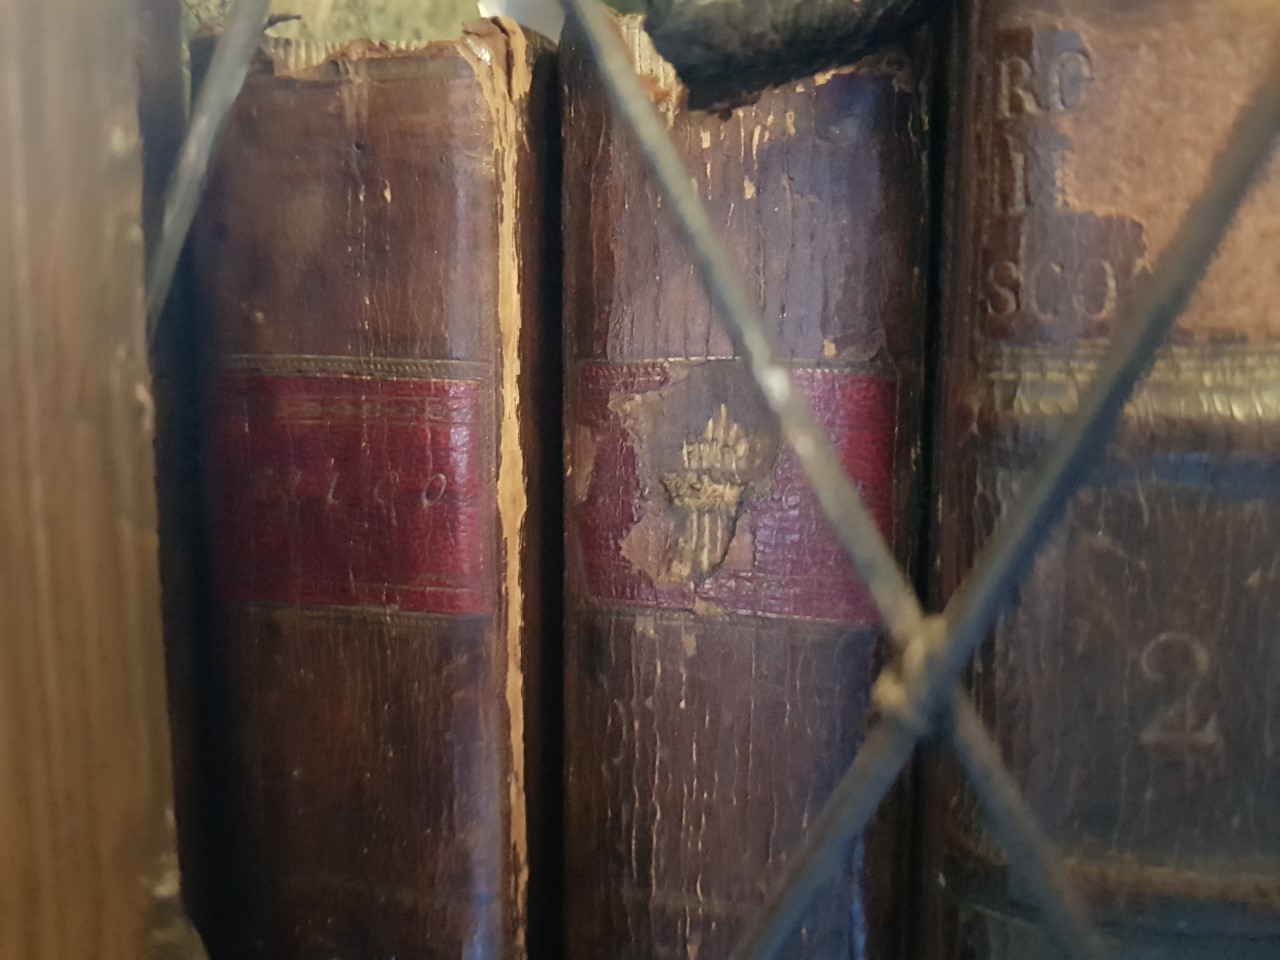 image of the Lighton Library's copy of Moore's Zeluco